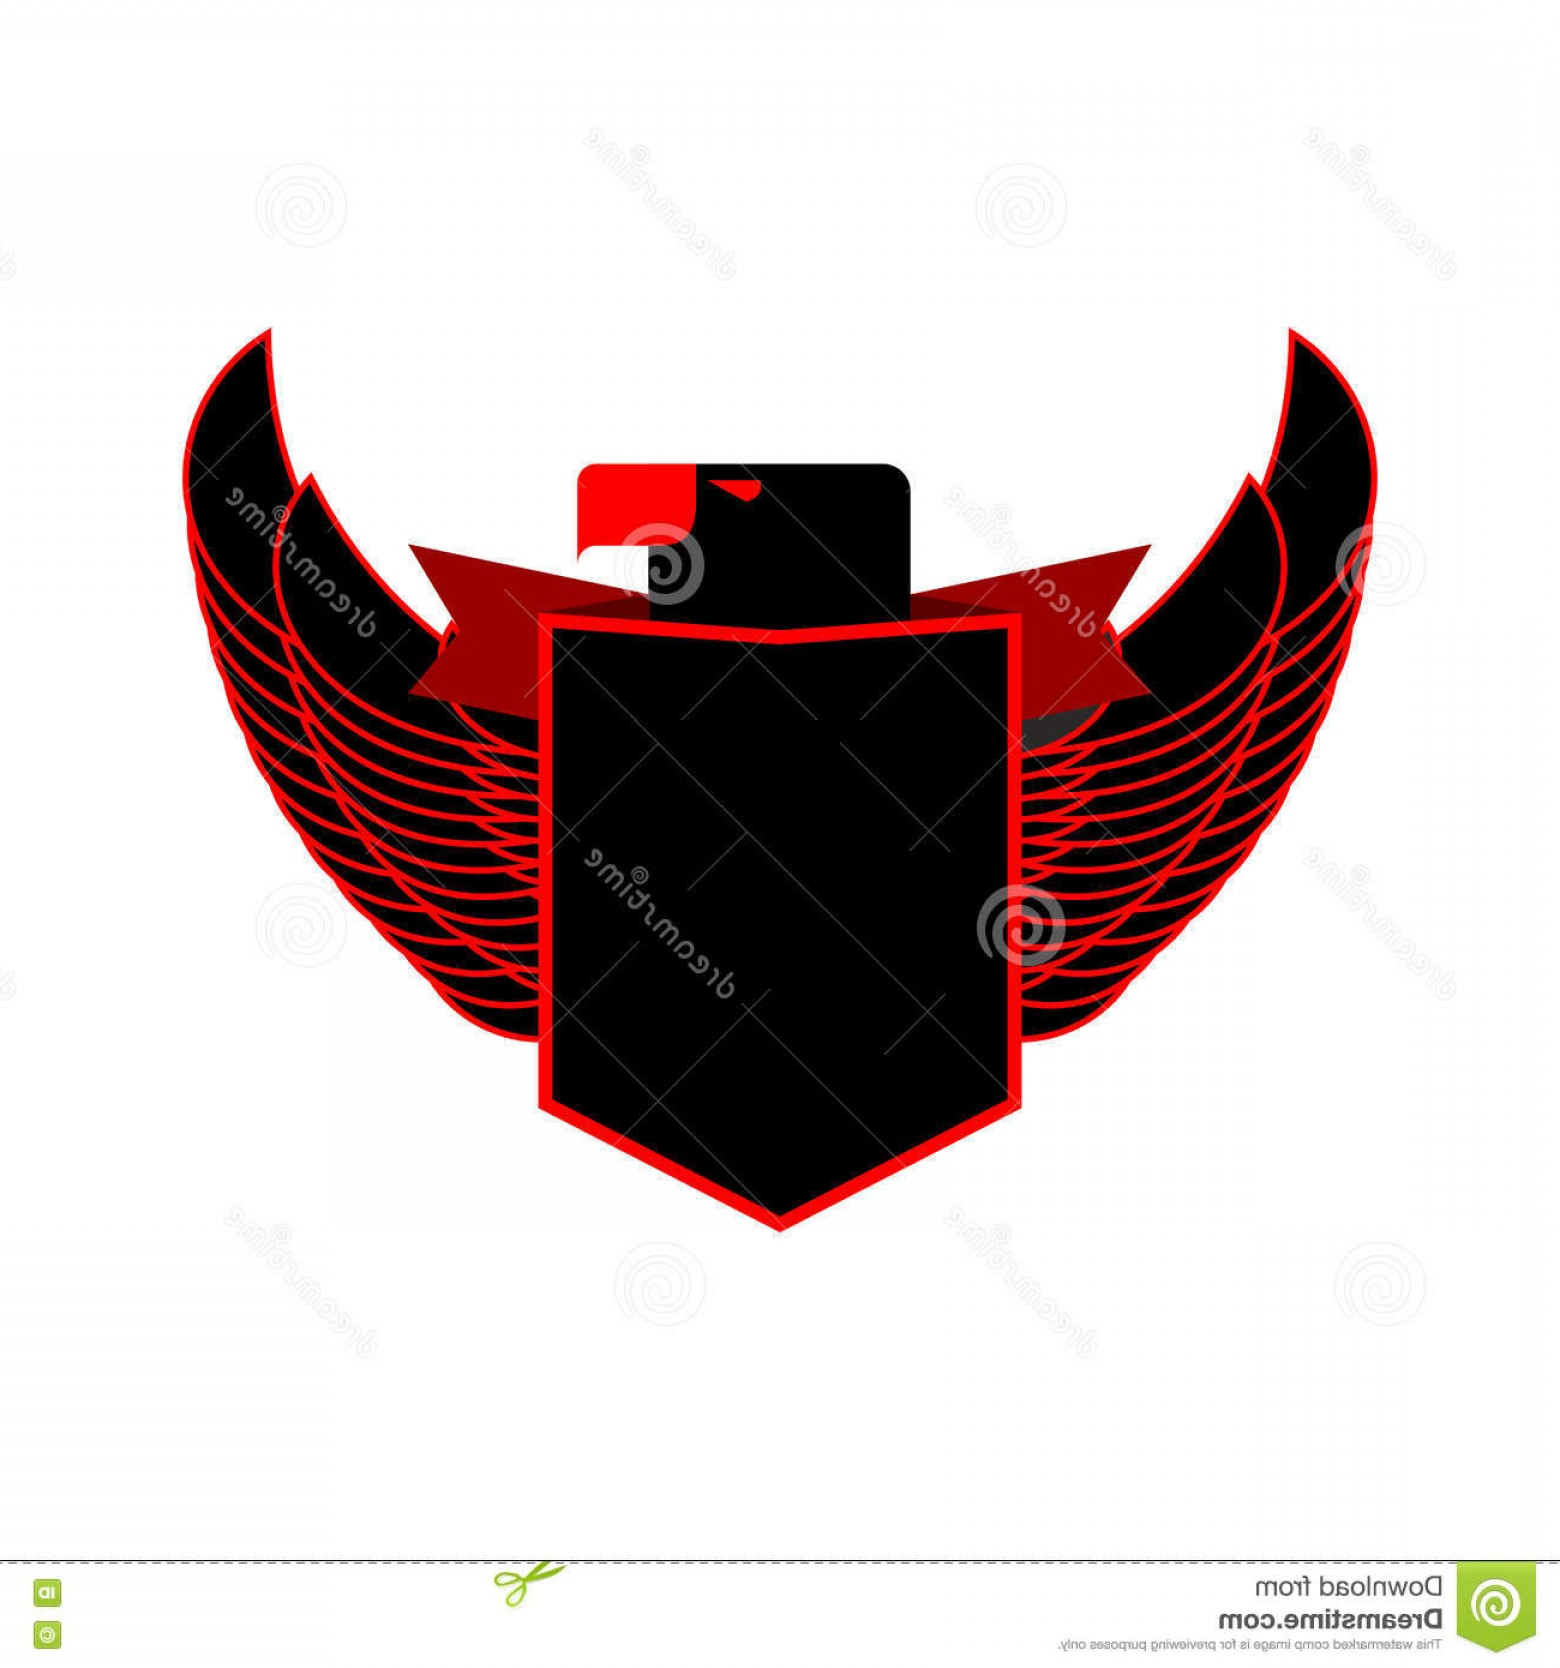 Falcon Wing Vector Art: Stock Illustration Eagle Shield Heraldic Emblem Black Falcon Wings Logo Image